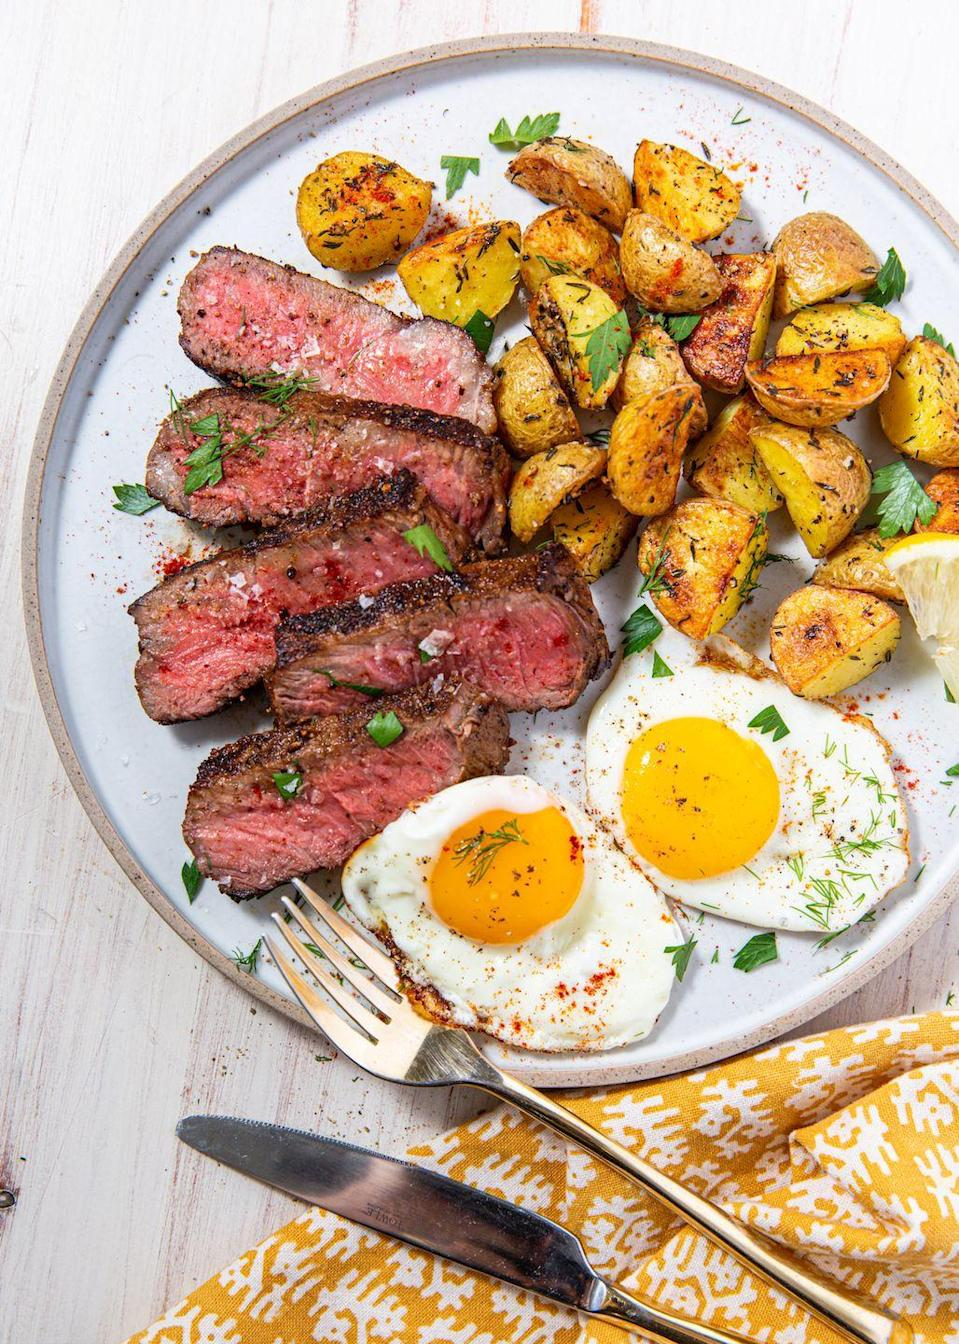 """<p>Our ideal brunch all year long. </p><p>Get the recipe from <a href=""""https://www.delish.com/cooking/recipe-ideas/a30433895/steak-and-eggs-recipe/"""" rel=""""nofollow noopener"""" target=""""_blank"""" data-ylk=""""slk:Delish"""" class=""""link rapid-noclick-resp"""">Delish</a>. </p>"""